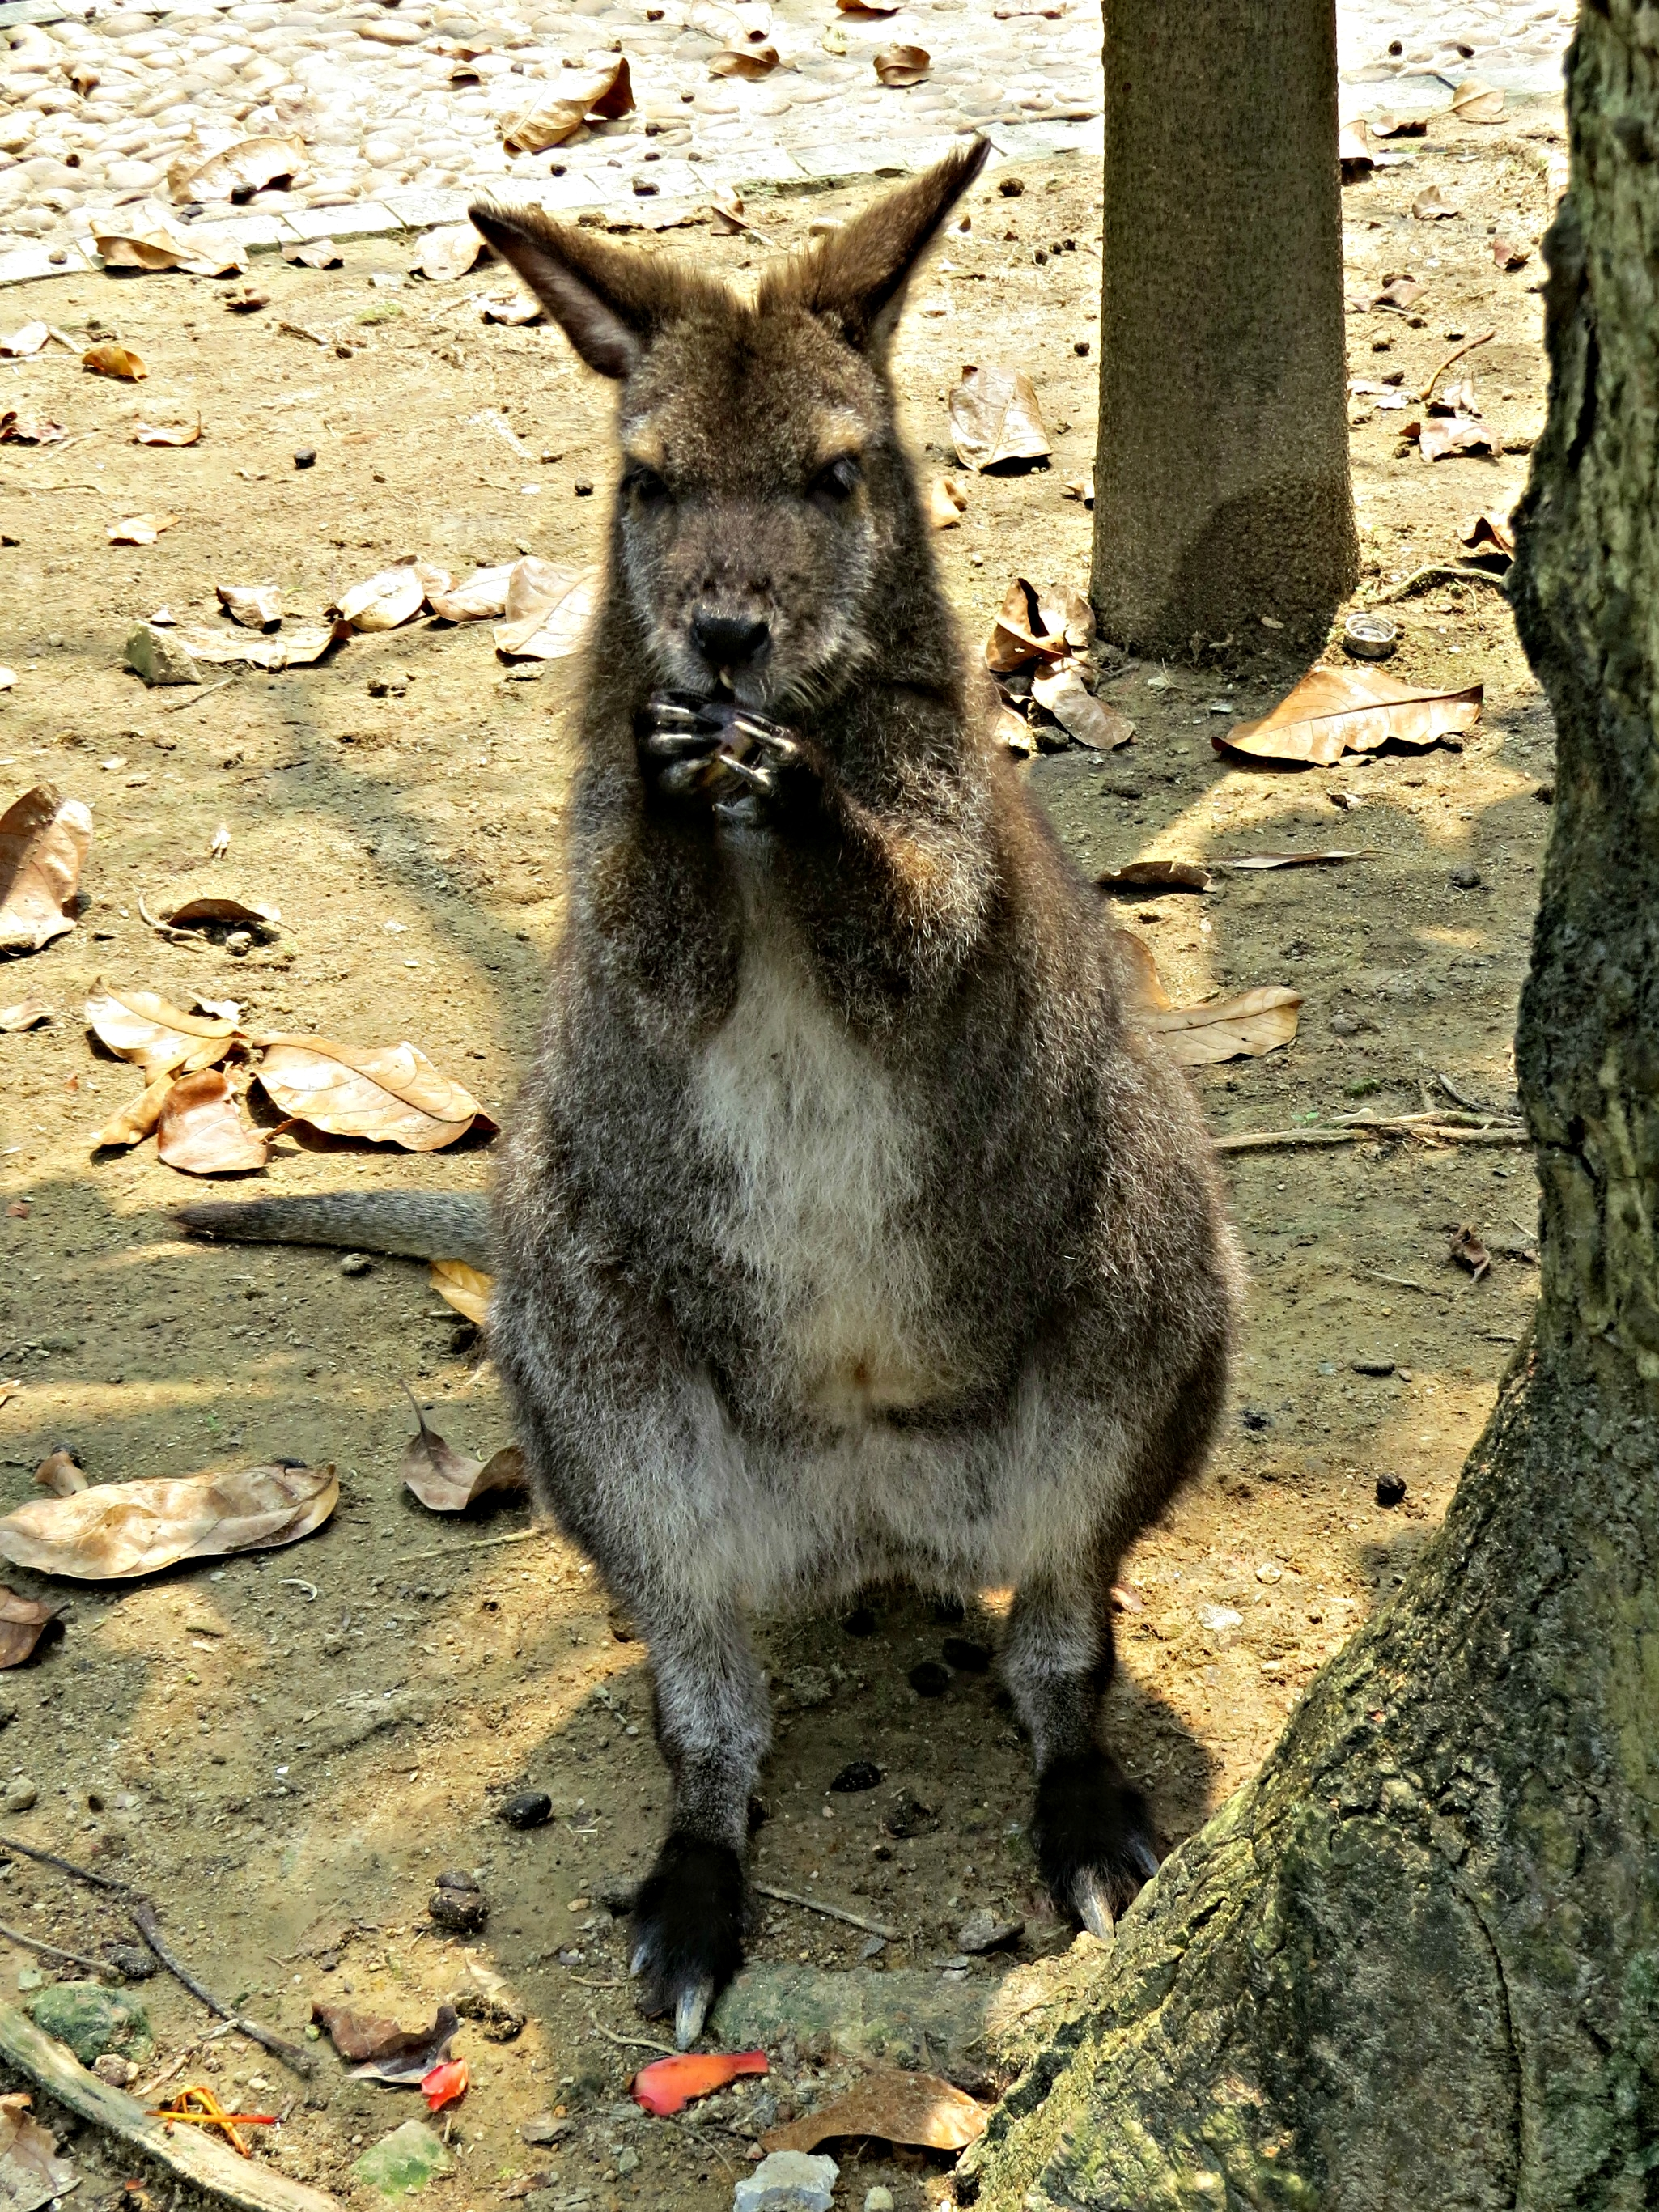 This wallaby was eating petals that had fallen from a Kapok tree.